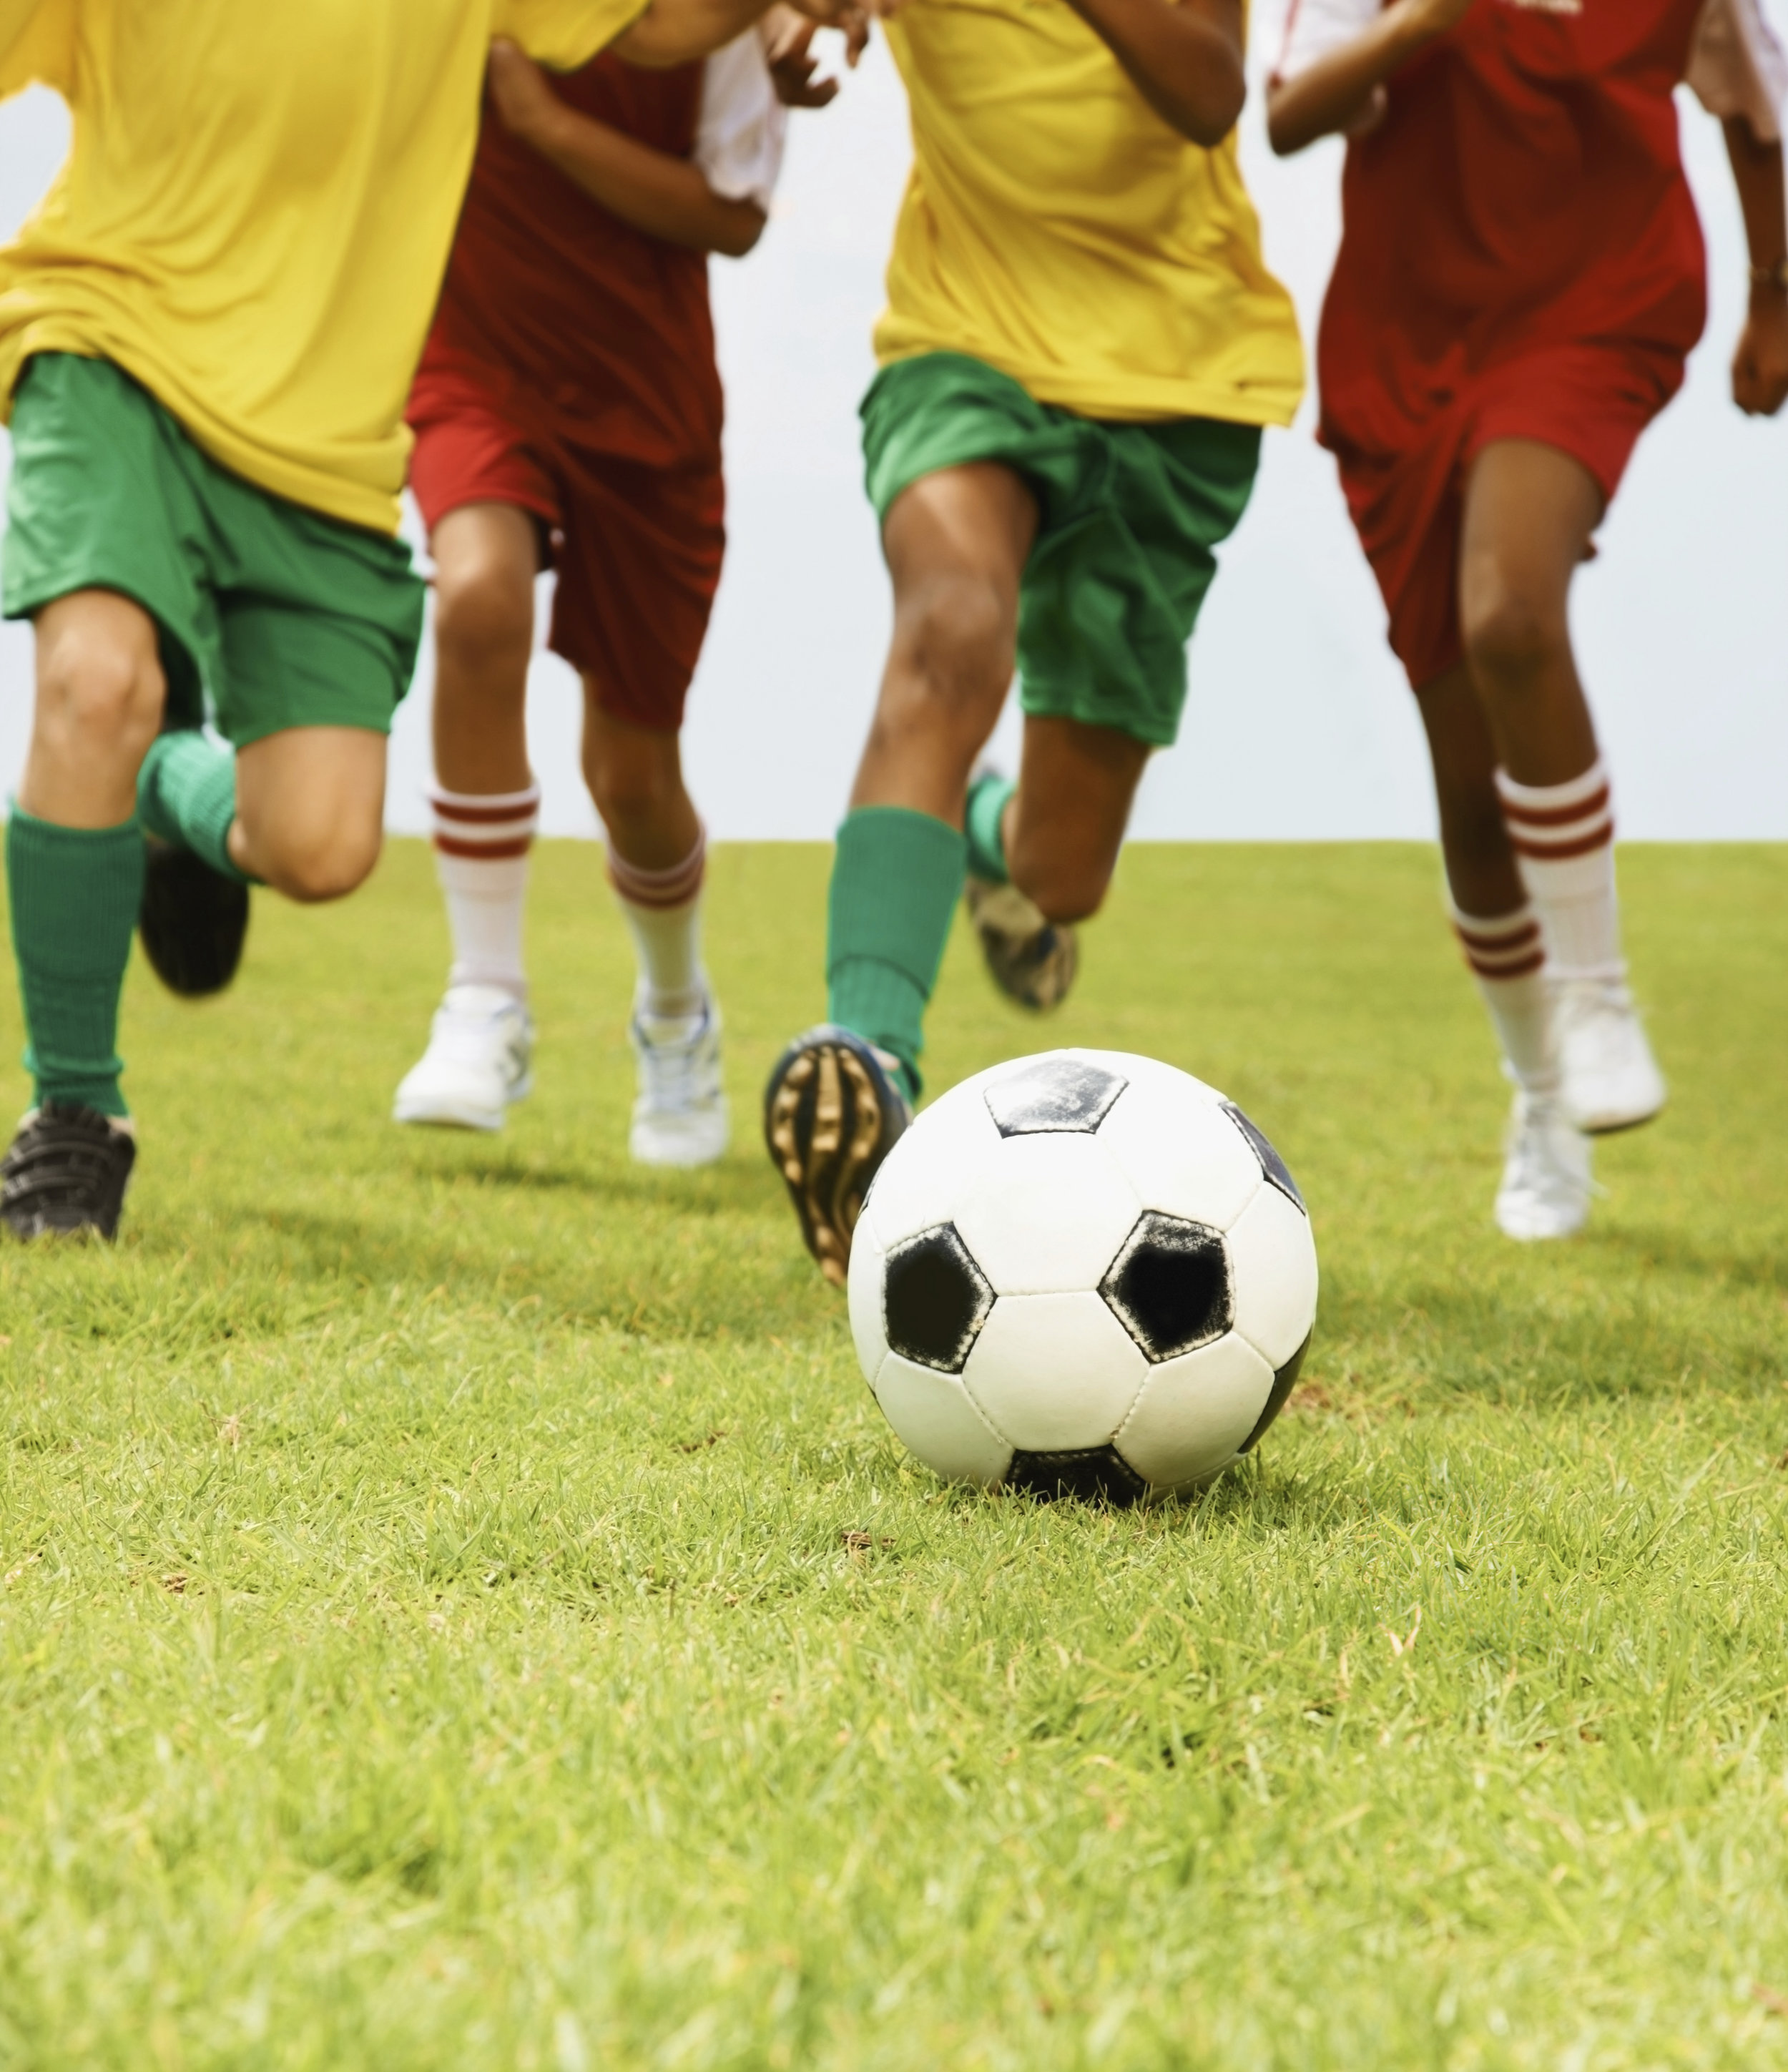 Group-of-children-playing-football-in-a-stadium-000011846561_Double.jpg